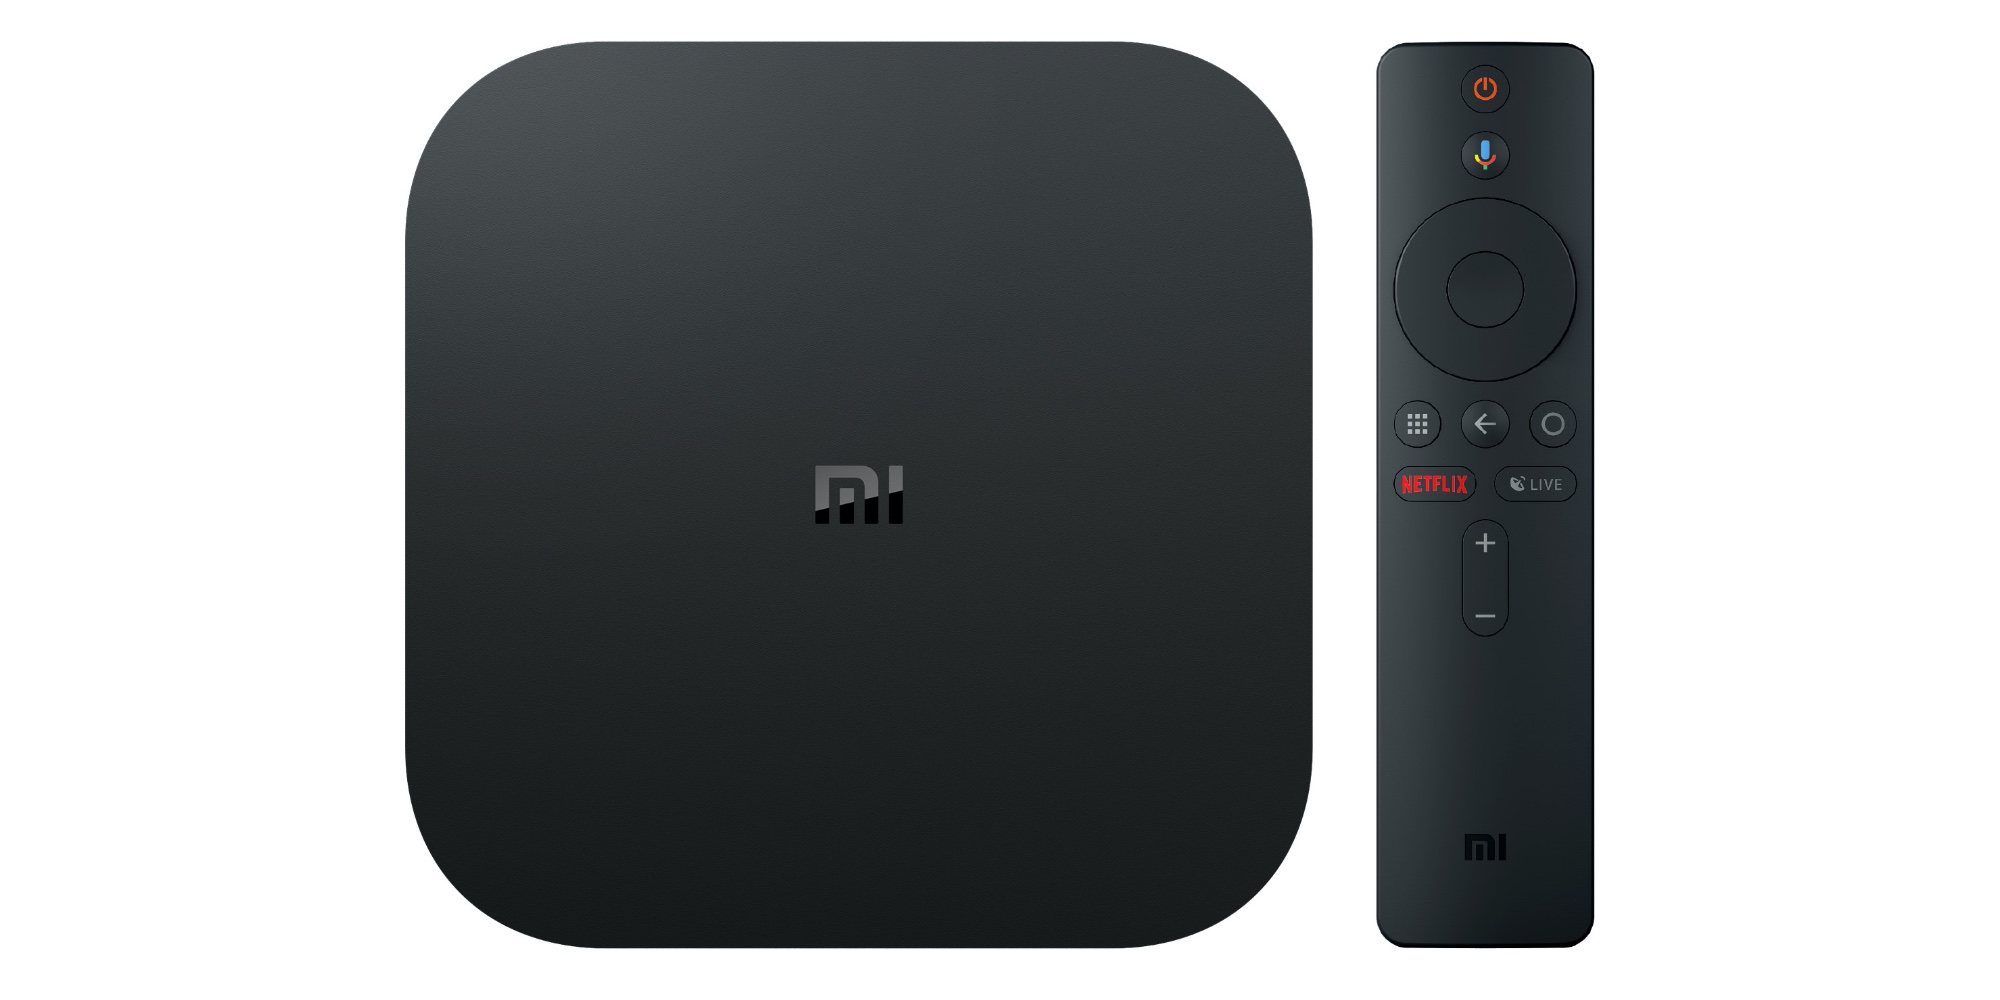 Slash 50% off Xiaomi's Mi Box S 4K Android TV at an all-time low of $30